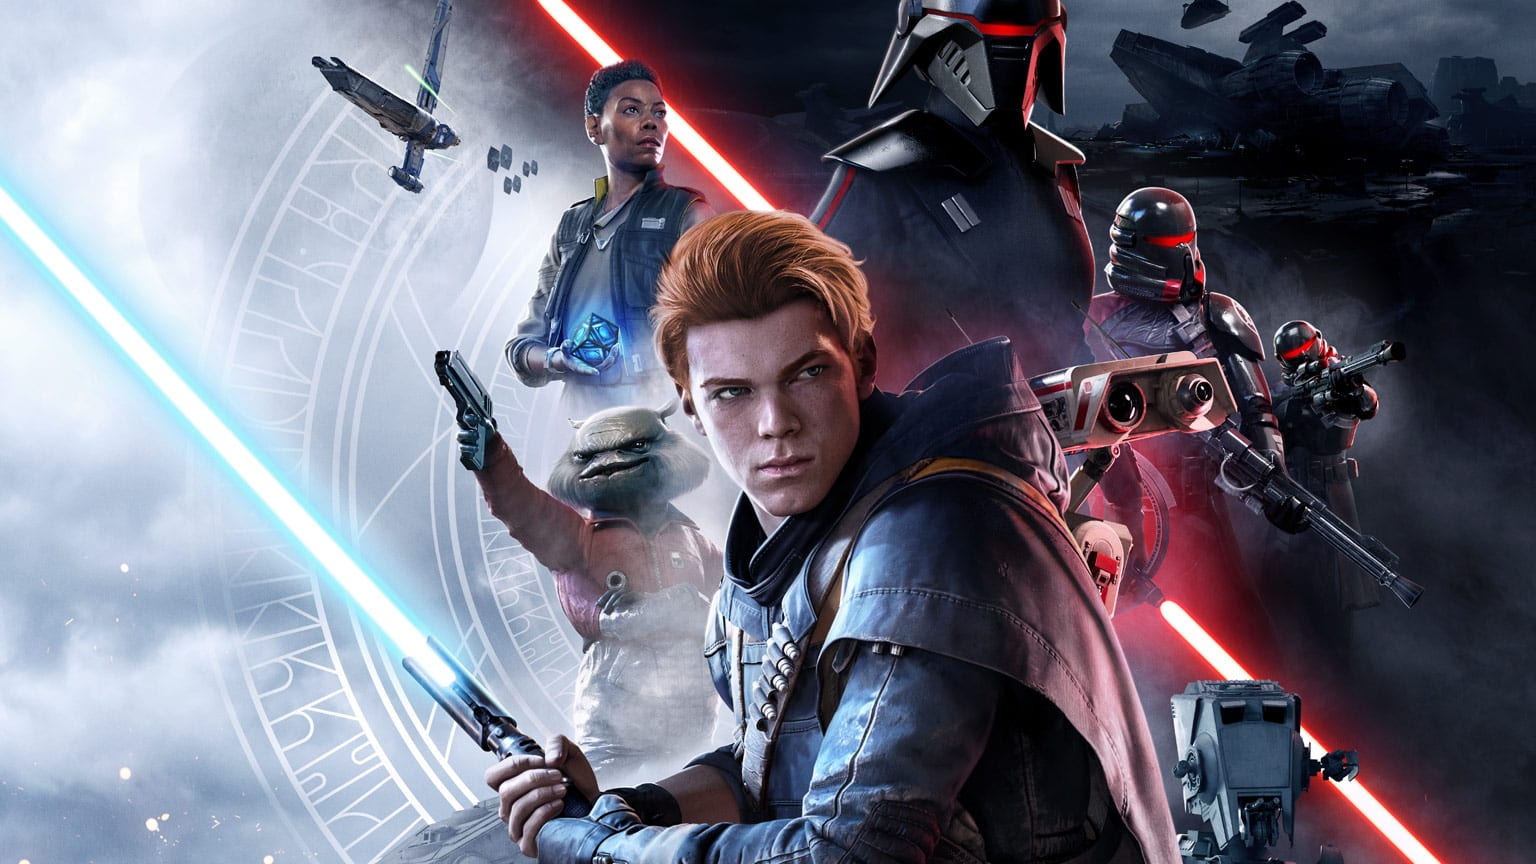 jedi fallen order, recharge force